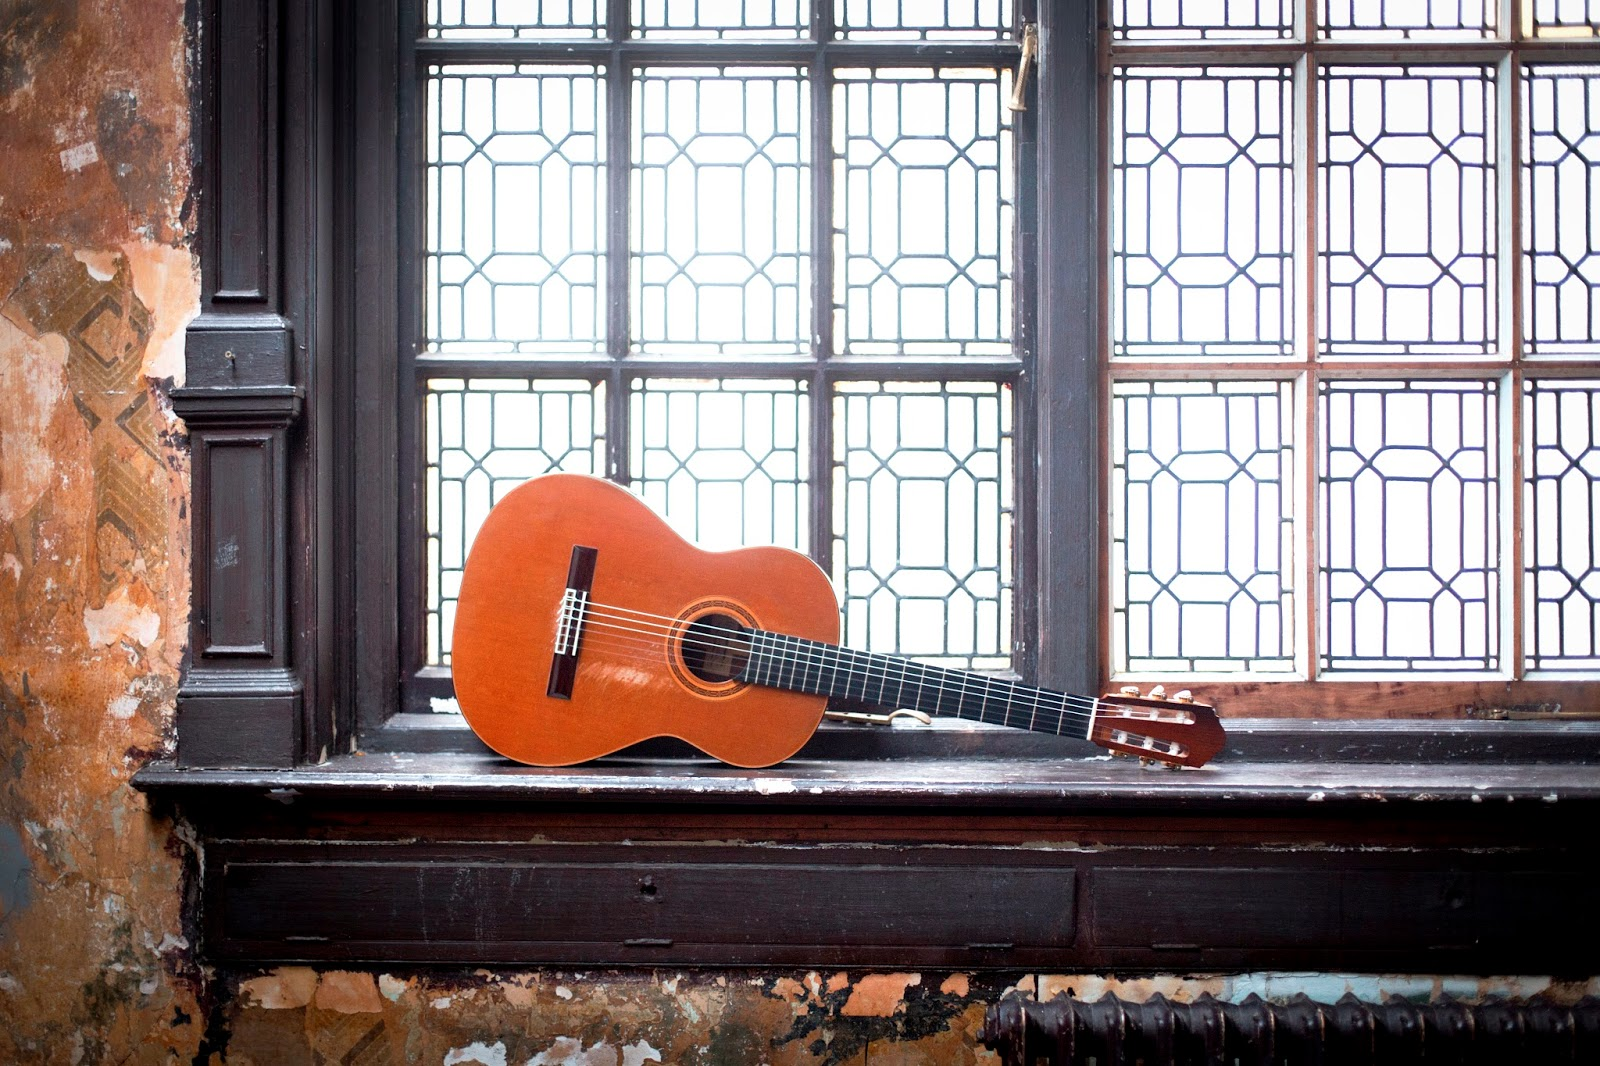 Christoph Denoth's guitar - photo credit: Benjamin Ealovega.